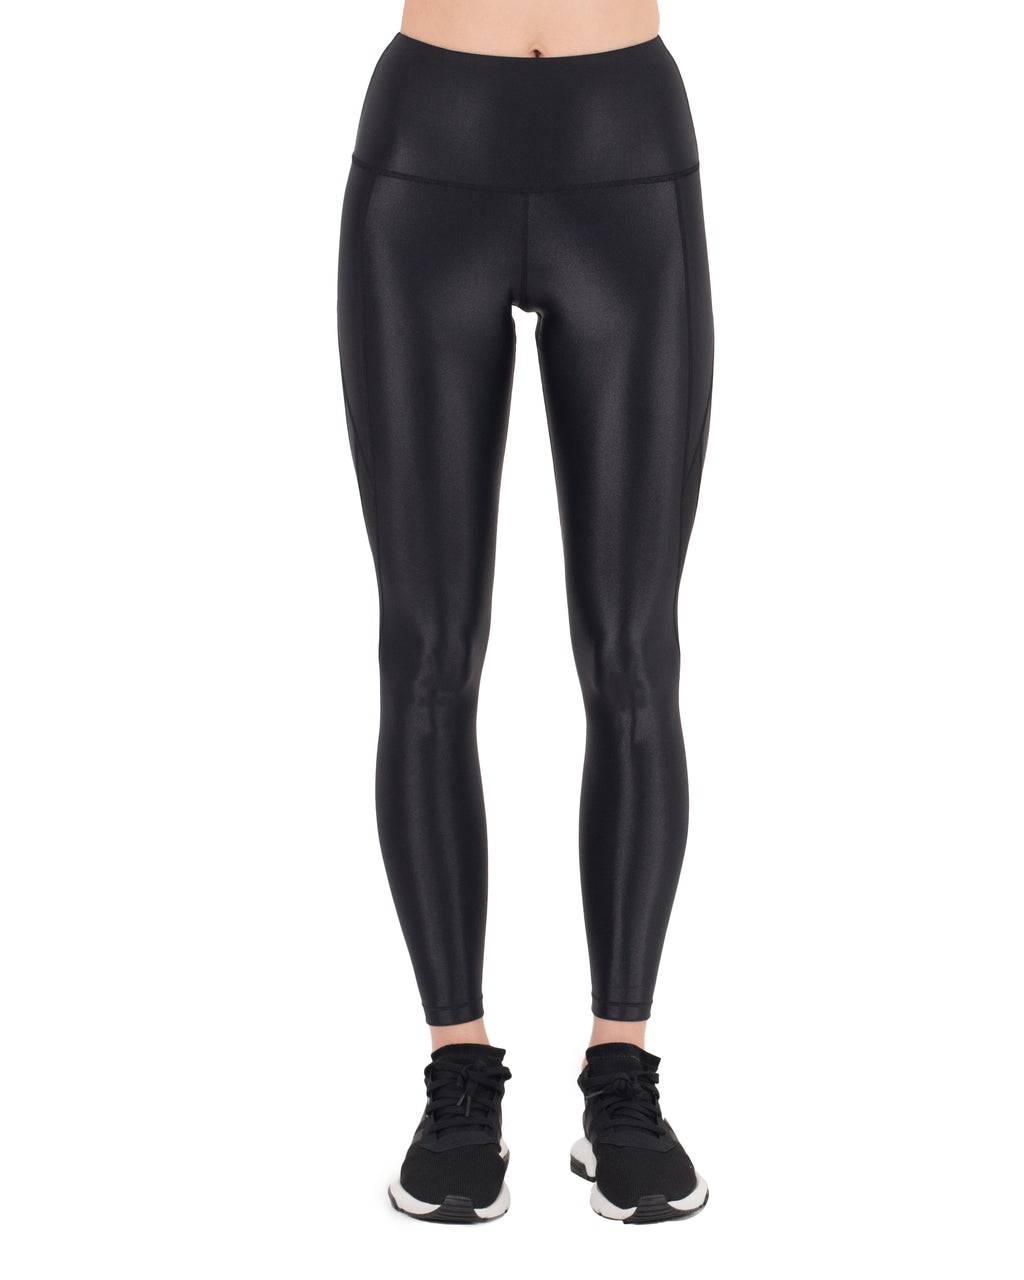 Sydney Leggings Black